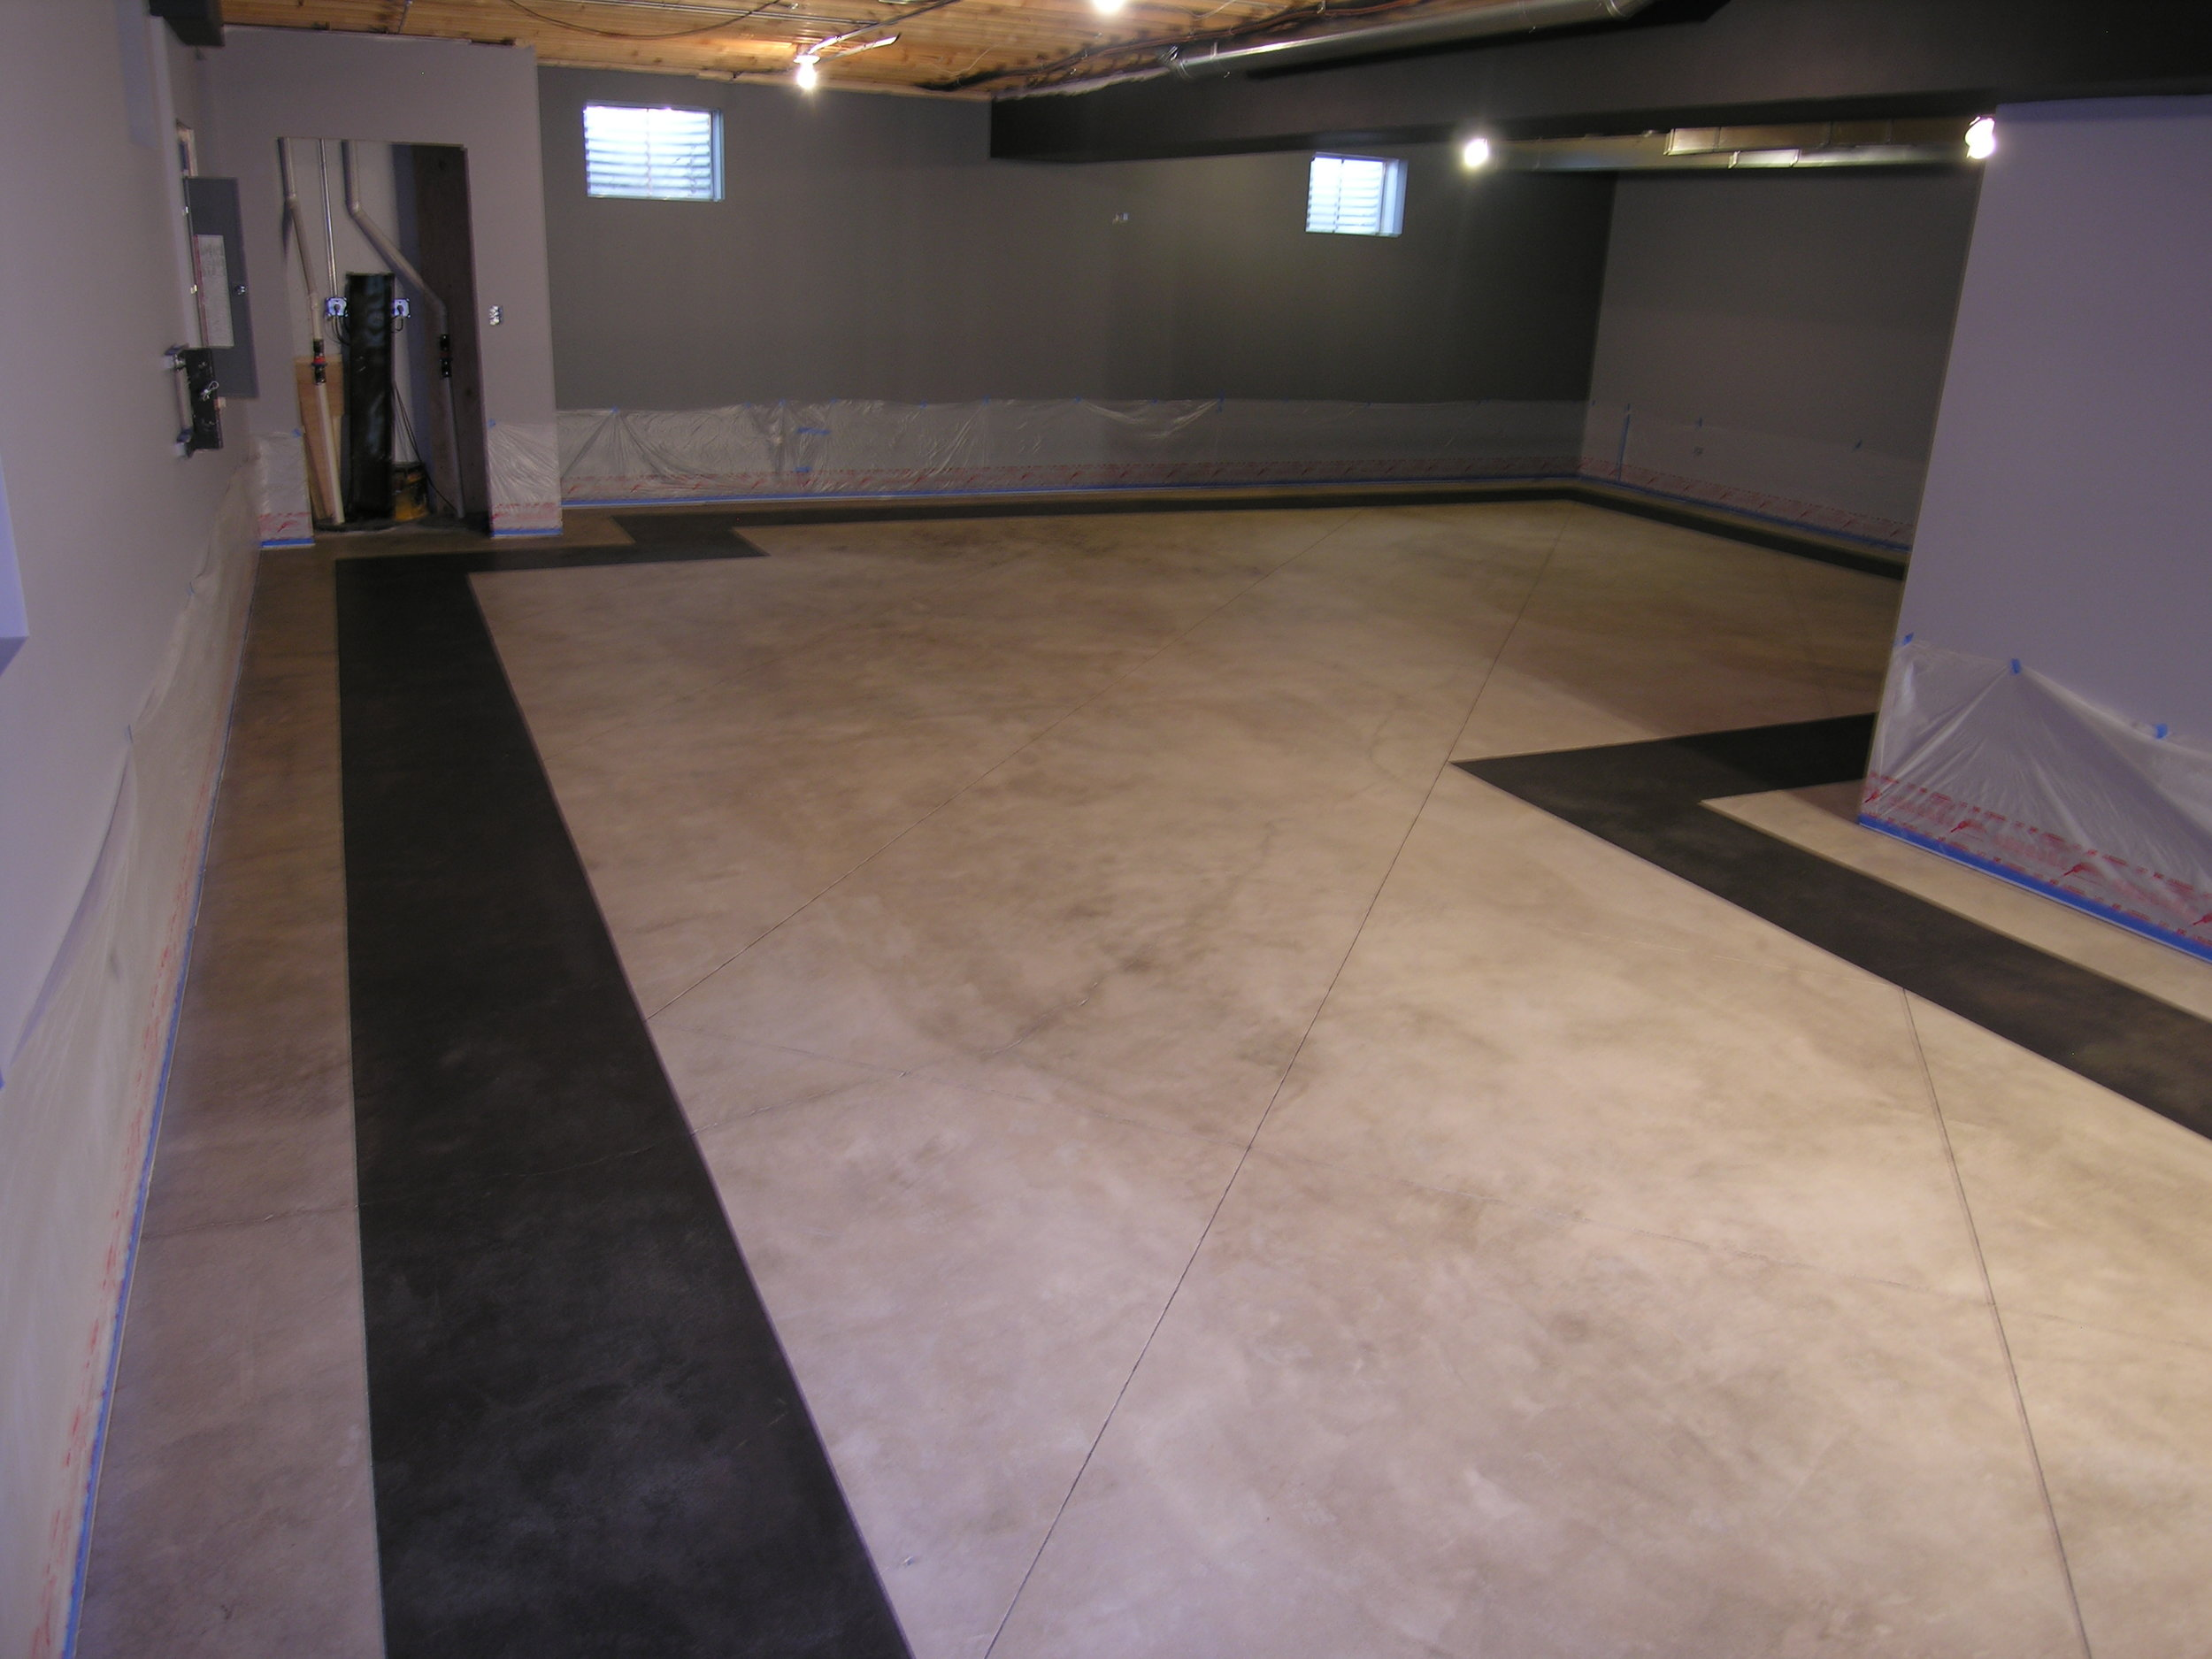 Finished Basement Acid-Stained Concrete Floor With Saw-Cut Black Border Before Applying Clear Sealer